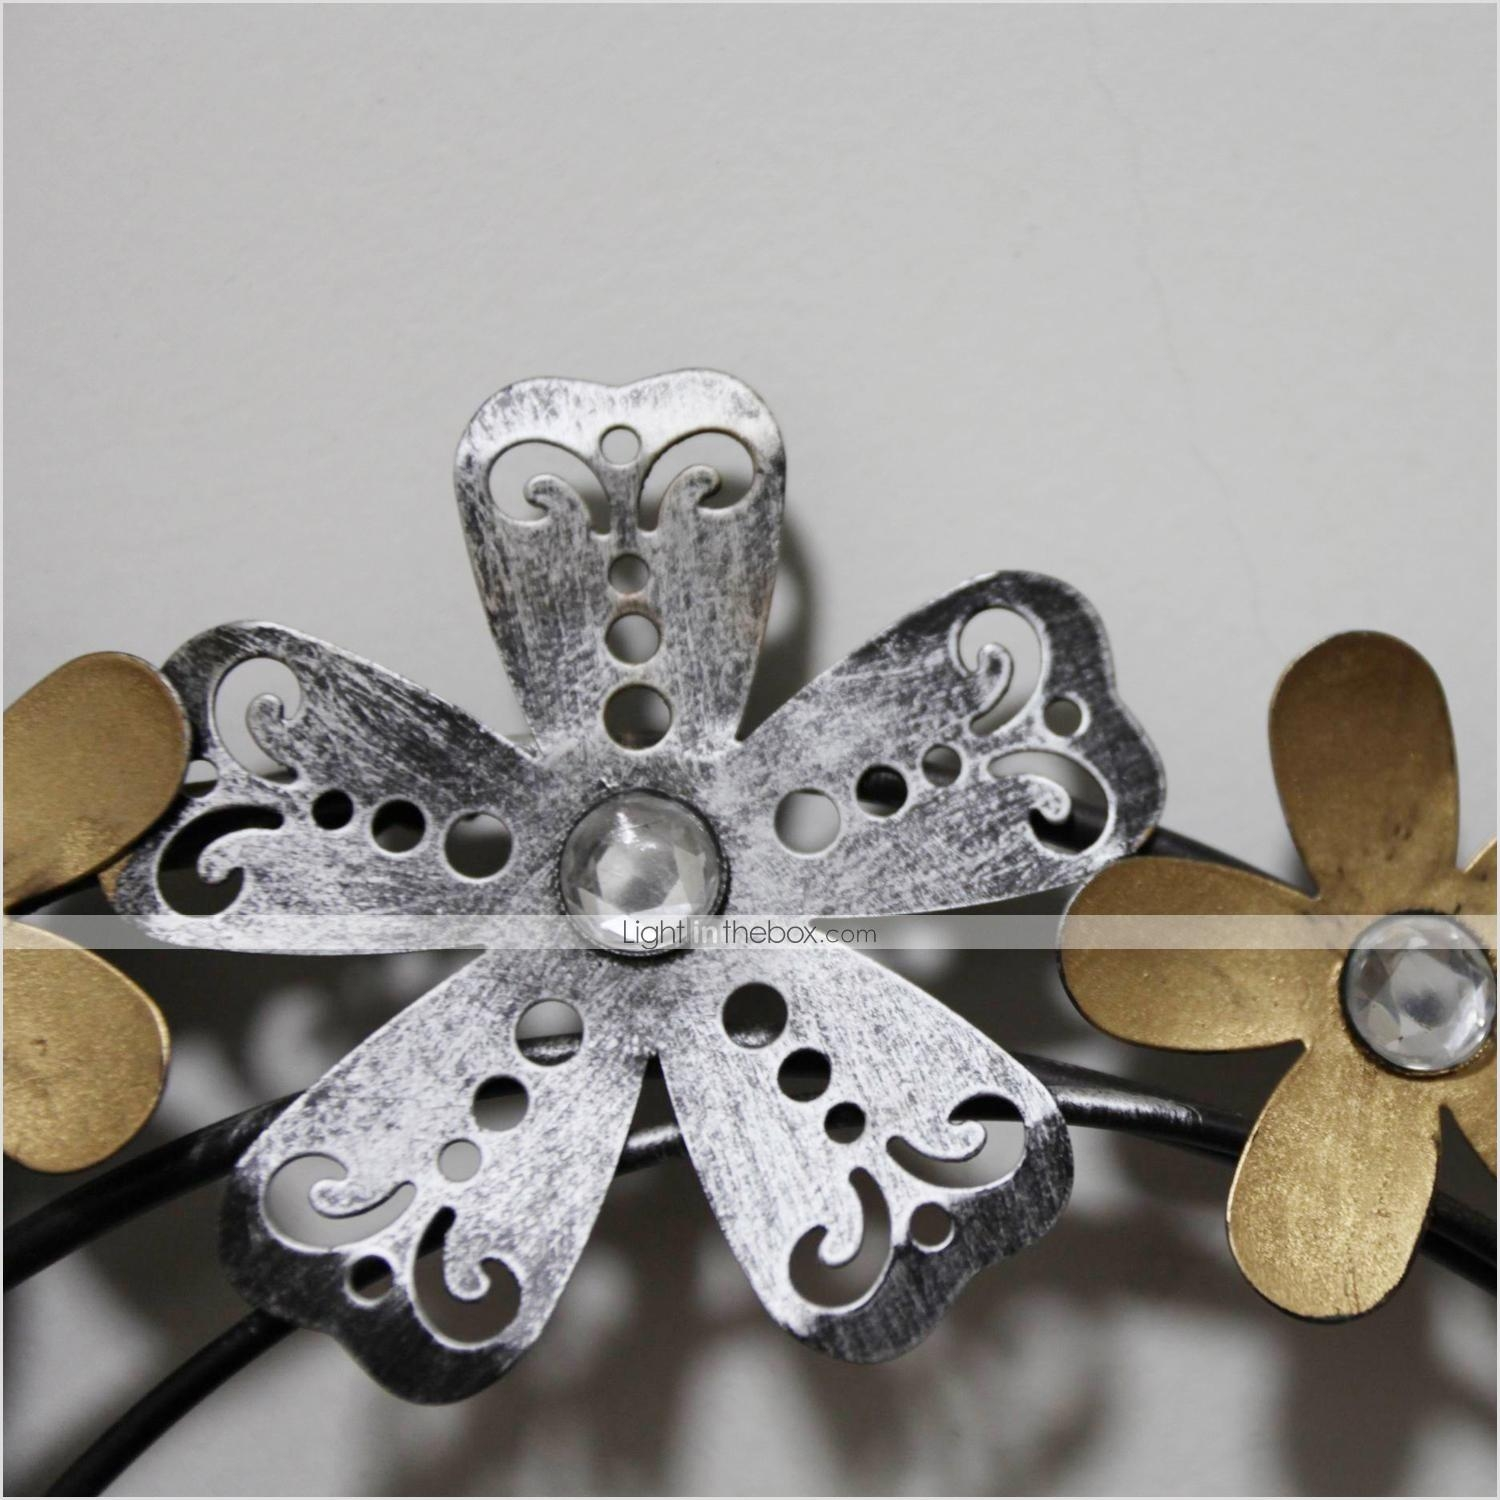 Heart Shaped Metal Wall Art Photos That Really Gorgeous – Desainnow Intended For Heart Shaped Metal Wall Art (Image 4 of 20)